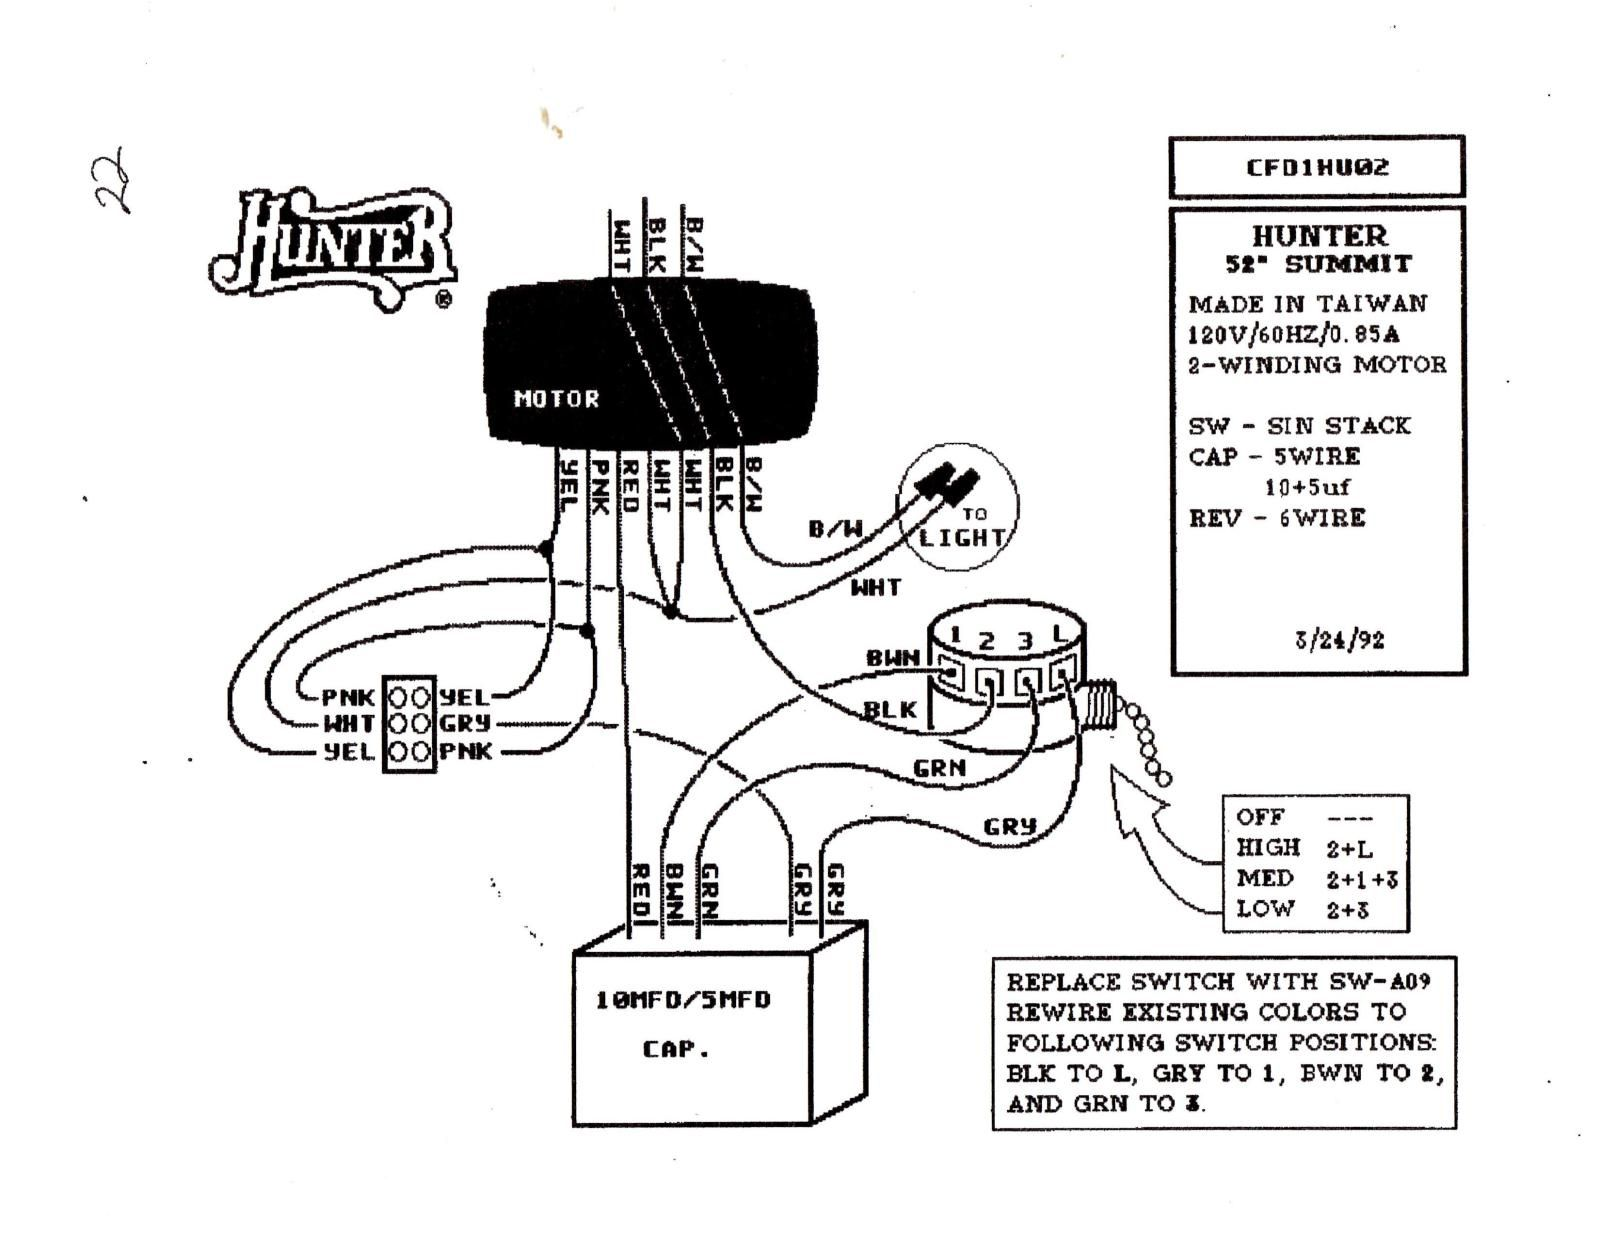 hunter ceiling fan speed switch wiring diagram switch hunter hunter ceiling fan speed switch wiring diagram [ 1600 x 1236 Pixel ]